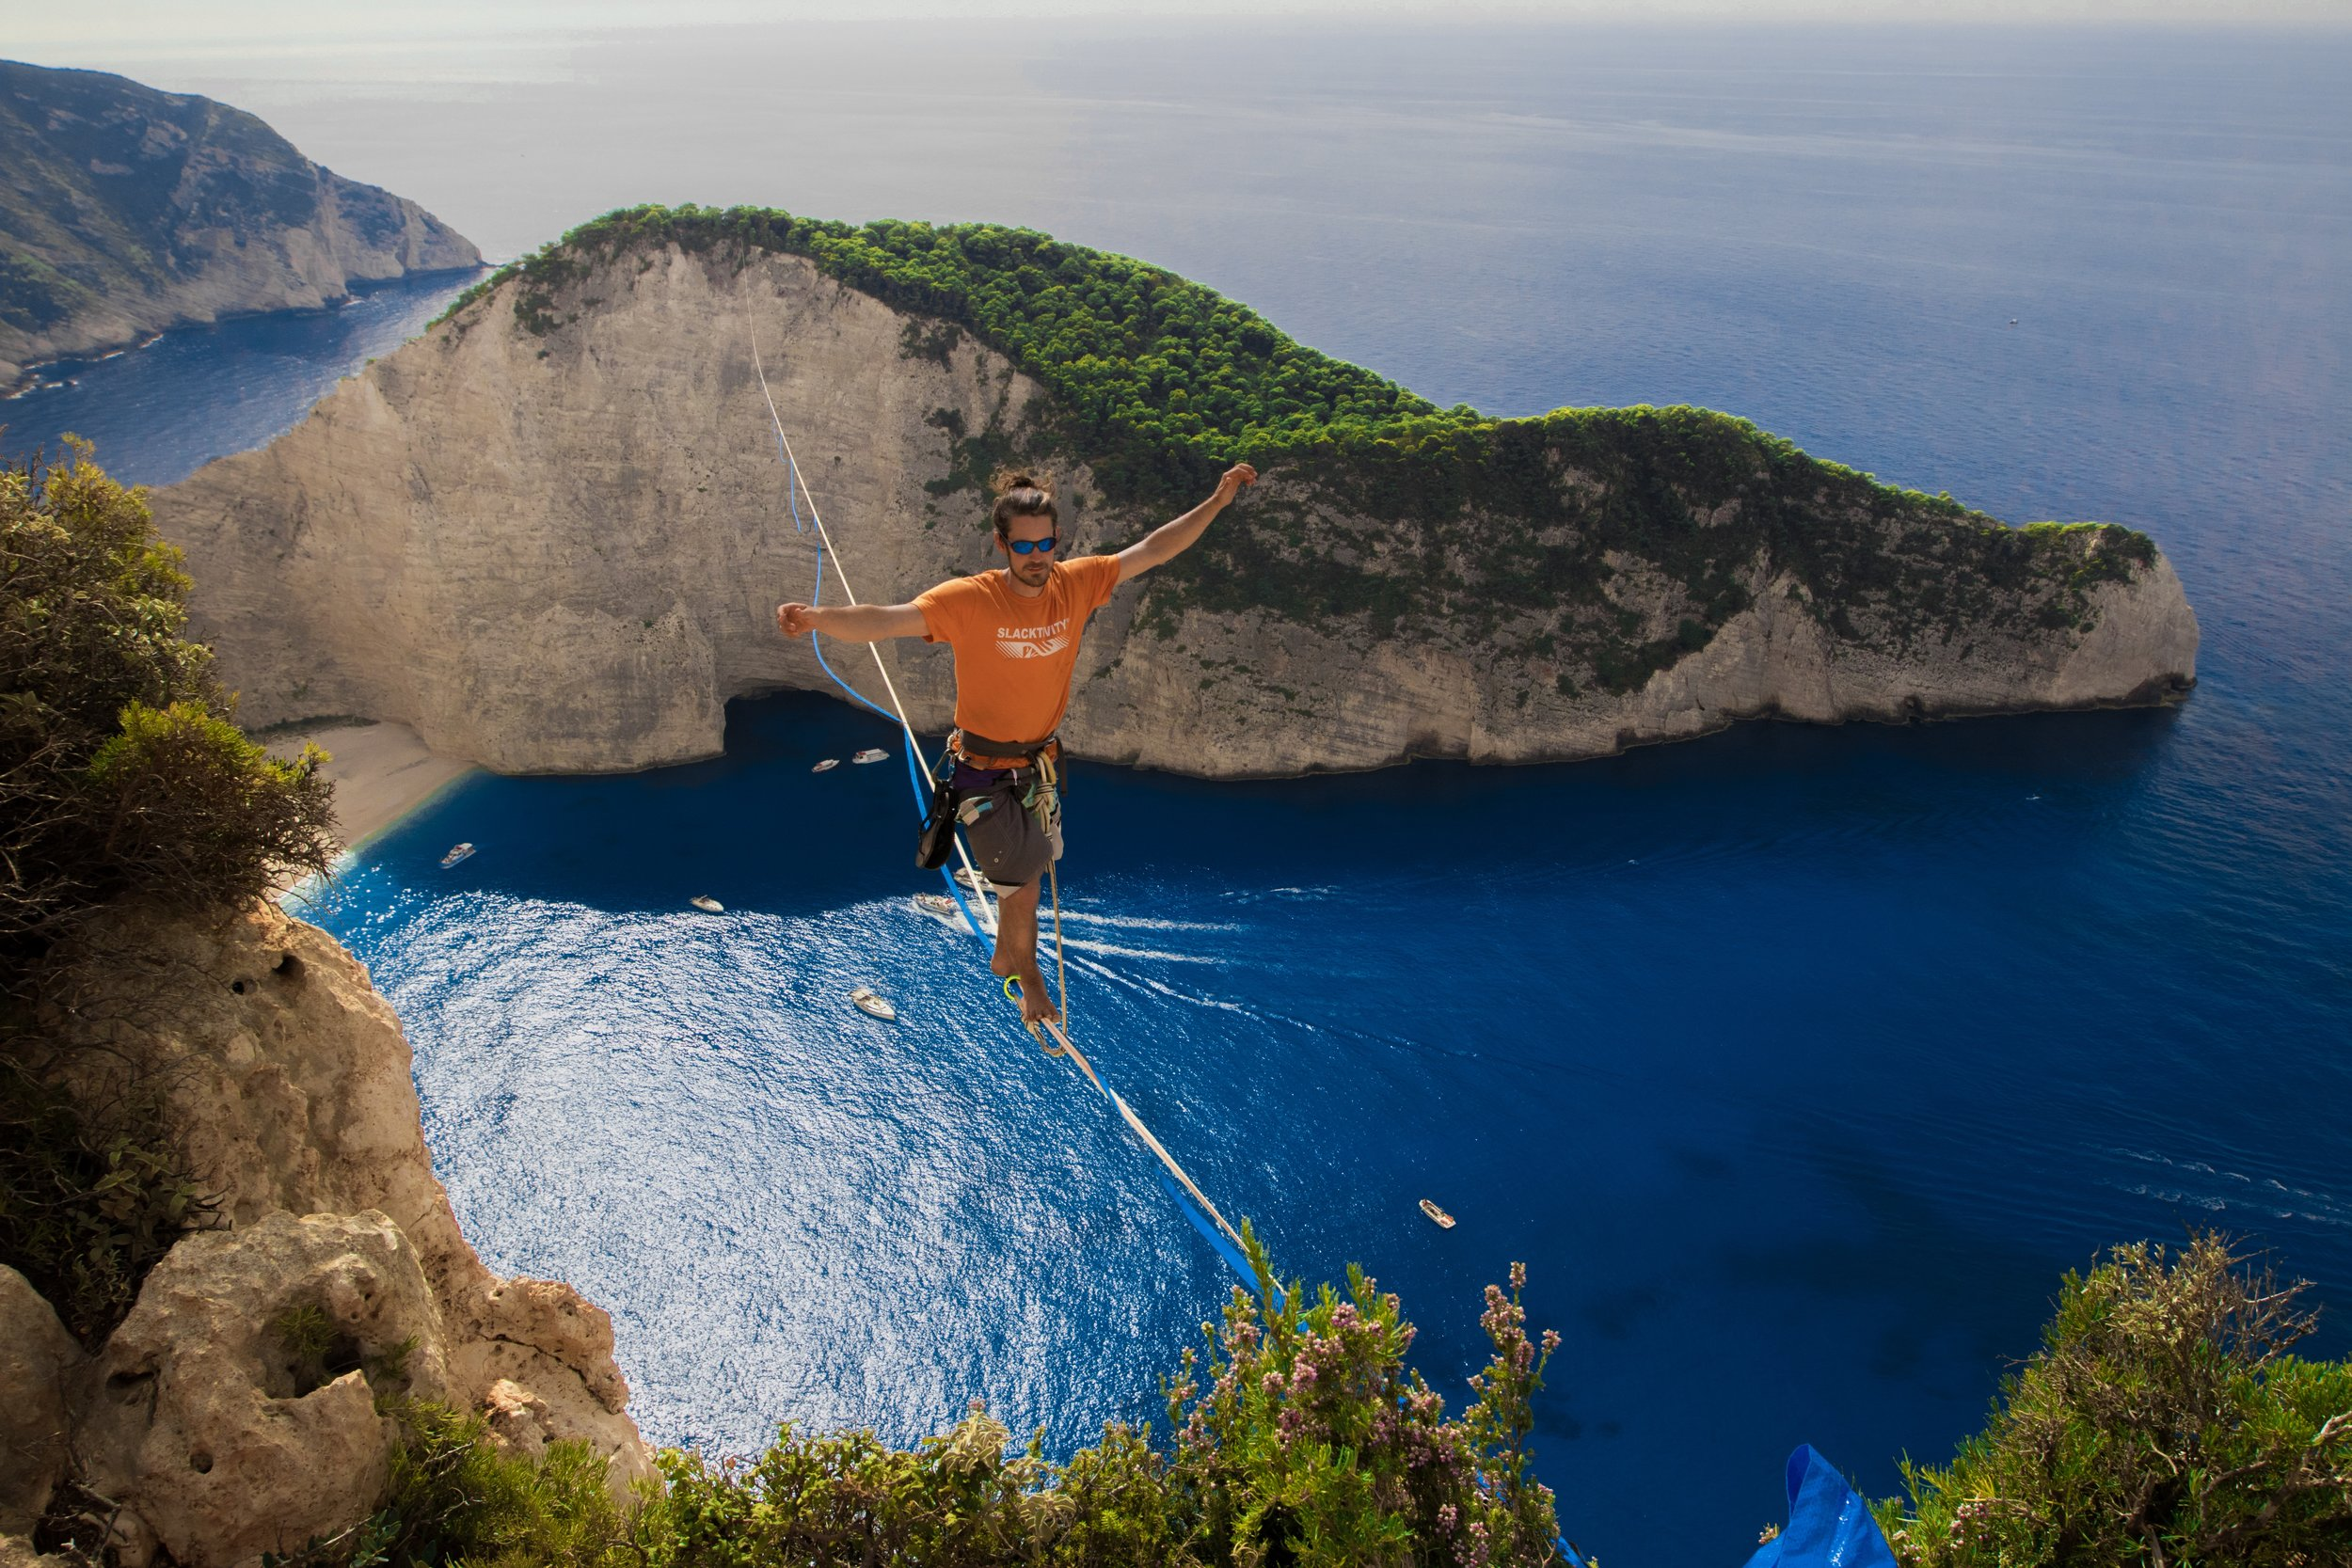 zakinthos greece navagio beach most beautiful paradise Slackline Lyell Grunberg show performance spectacle Highline trickline (2).JPG